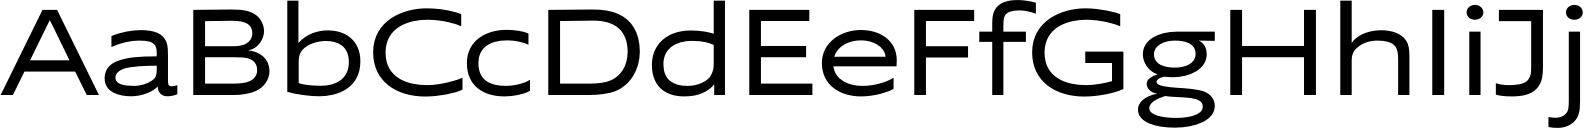 Supra Normal Extended Font